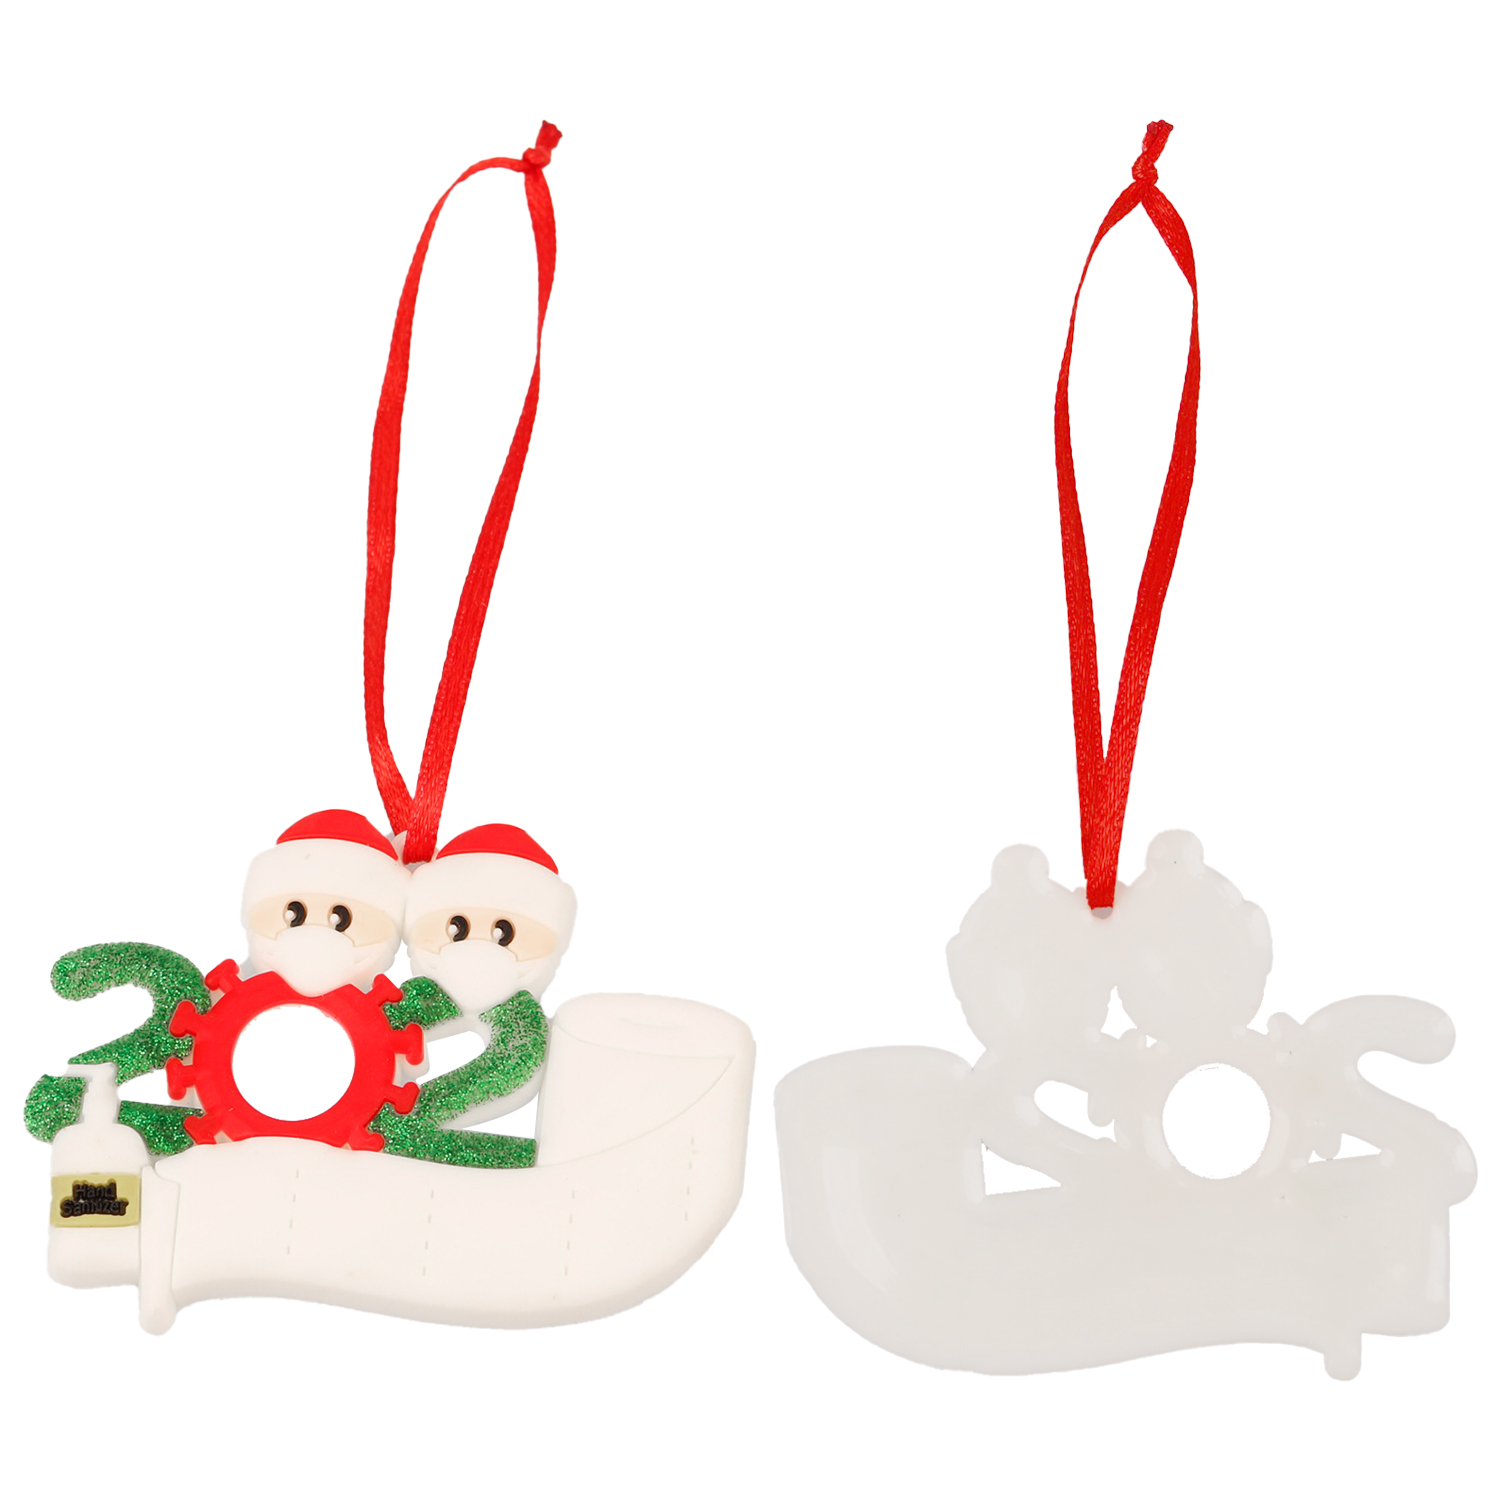 2020 Christmas Ornament Customized Gift Survivor Family of 2 3 4 5 6 7 Hang Decoration Snowman Pendant With Face Mask Hand Sanitizer Xmas